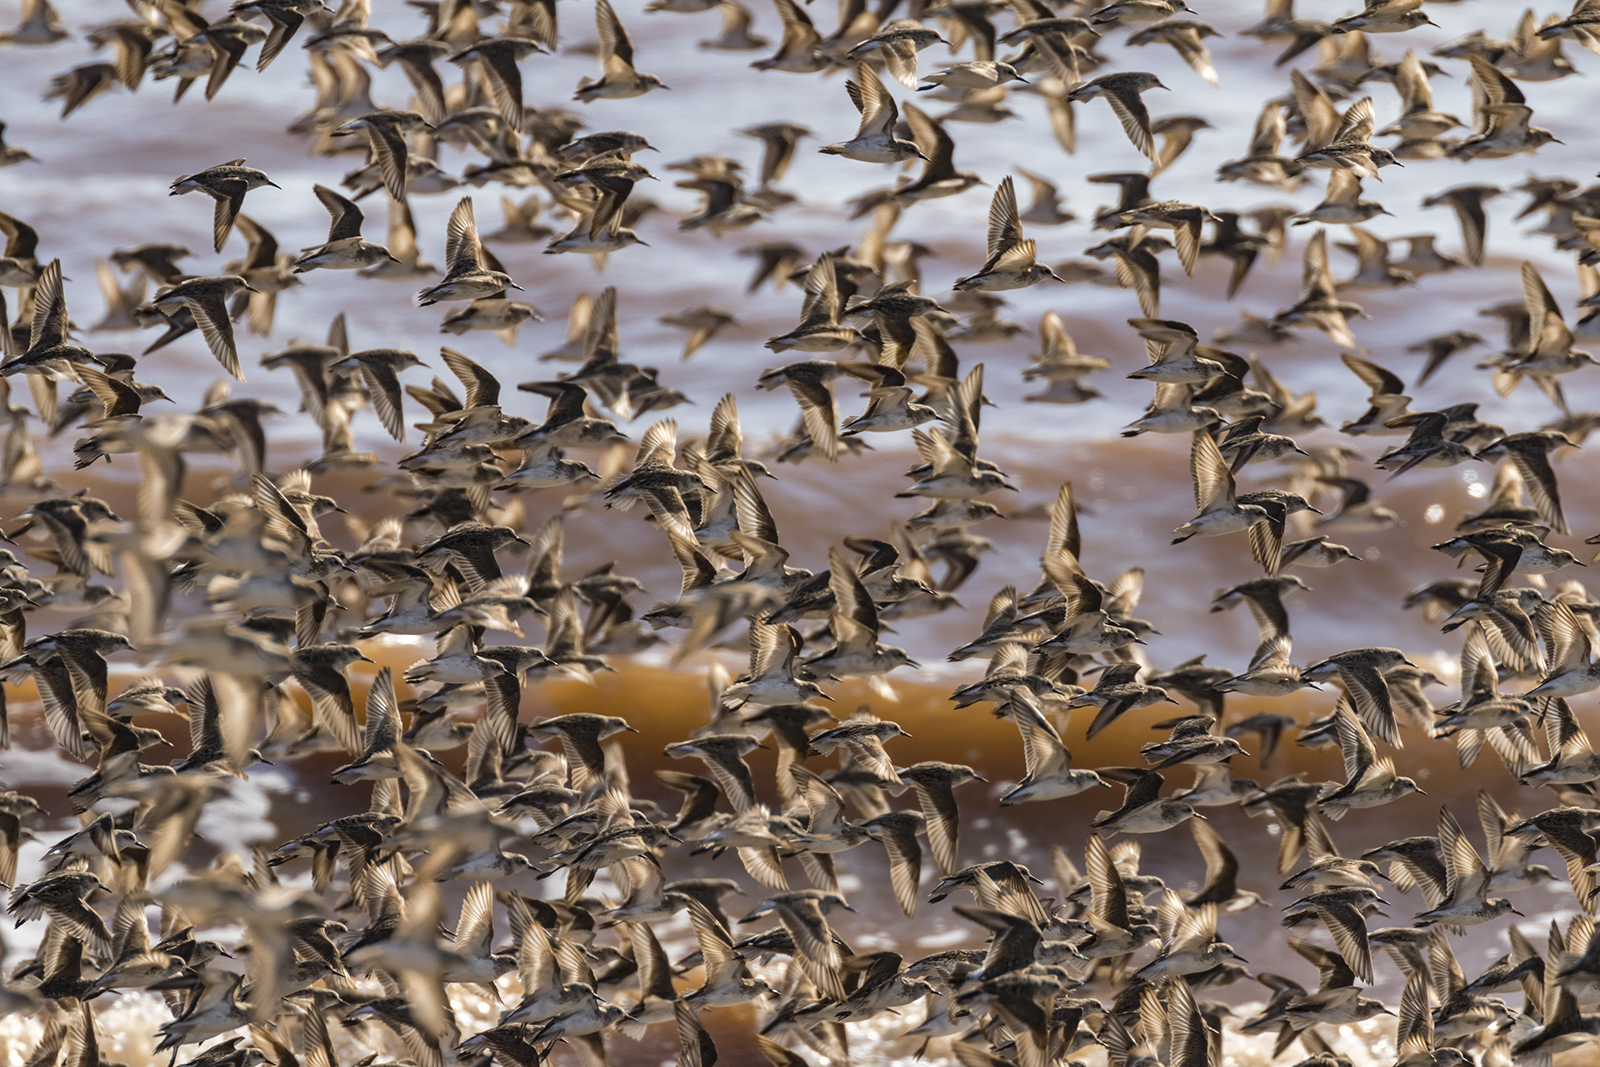 Semipalmated_Sandpipers-02-BRimages.ca